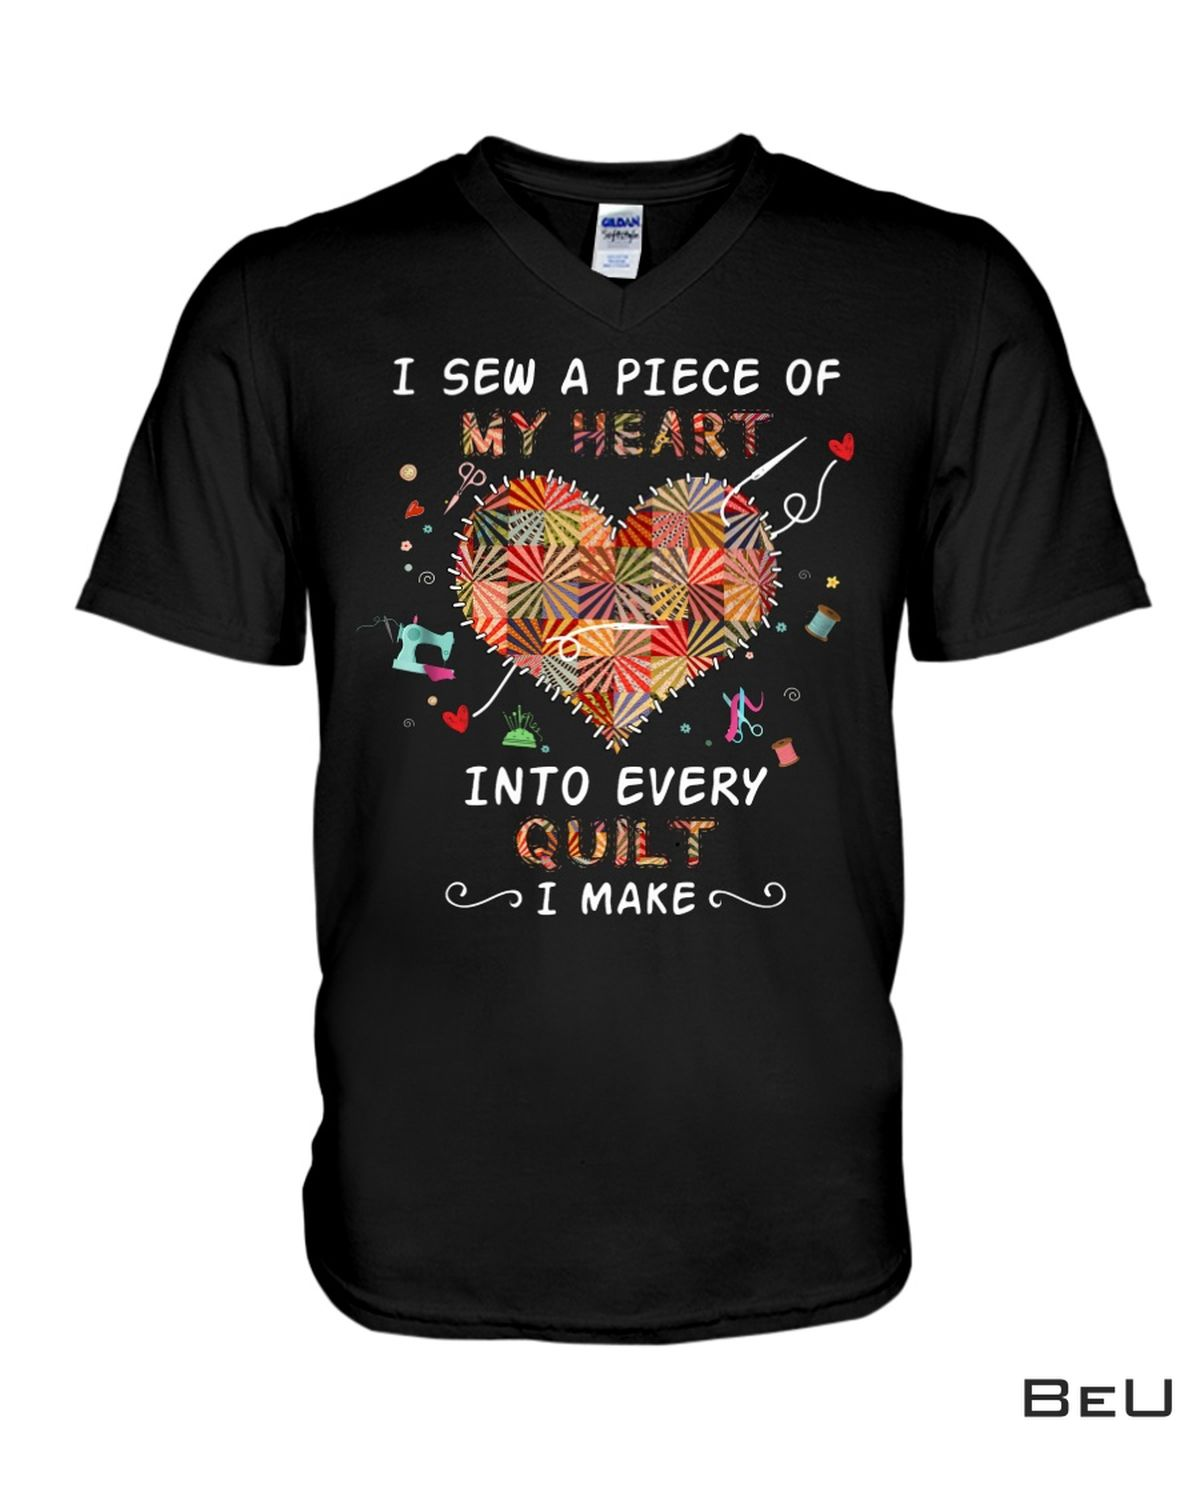 Popular I Sew A Piece Of My Heart Into Every Quilt I Make Shirt, hoodie, tank top